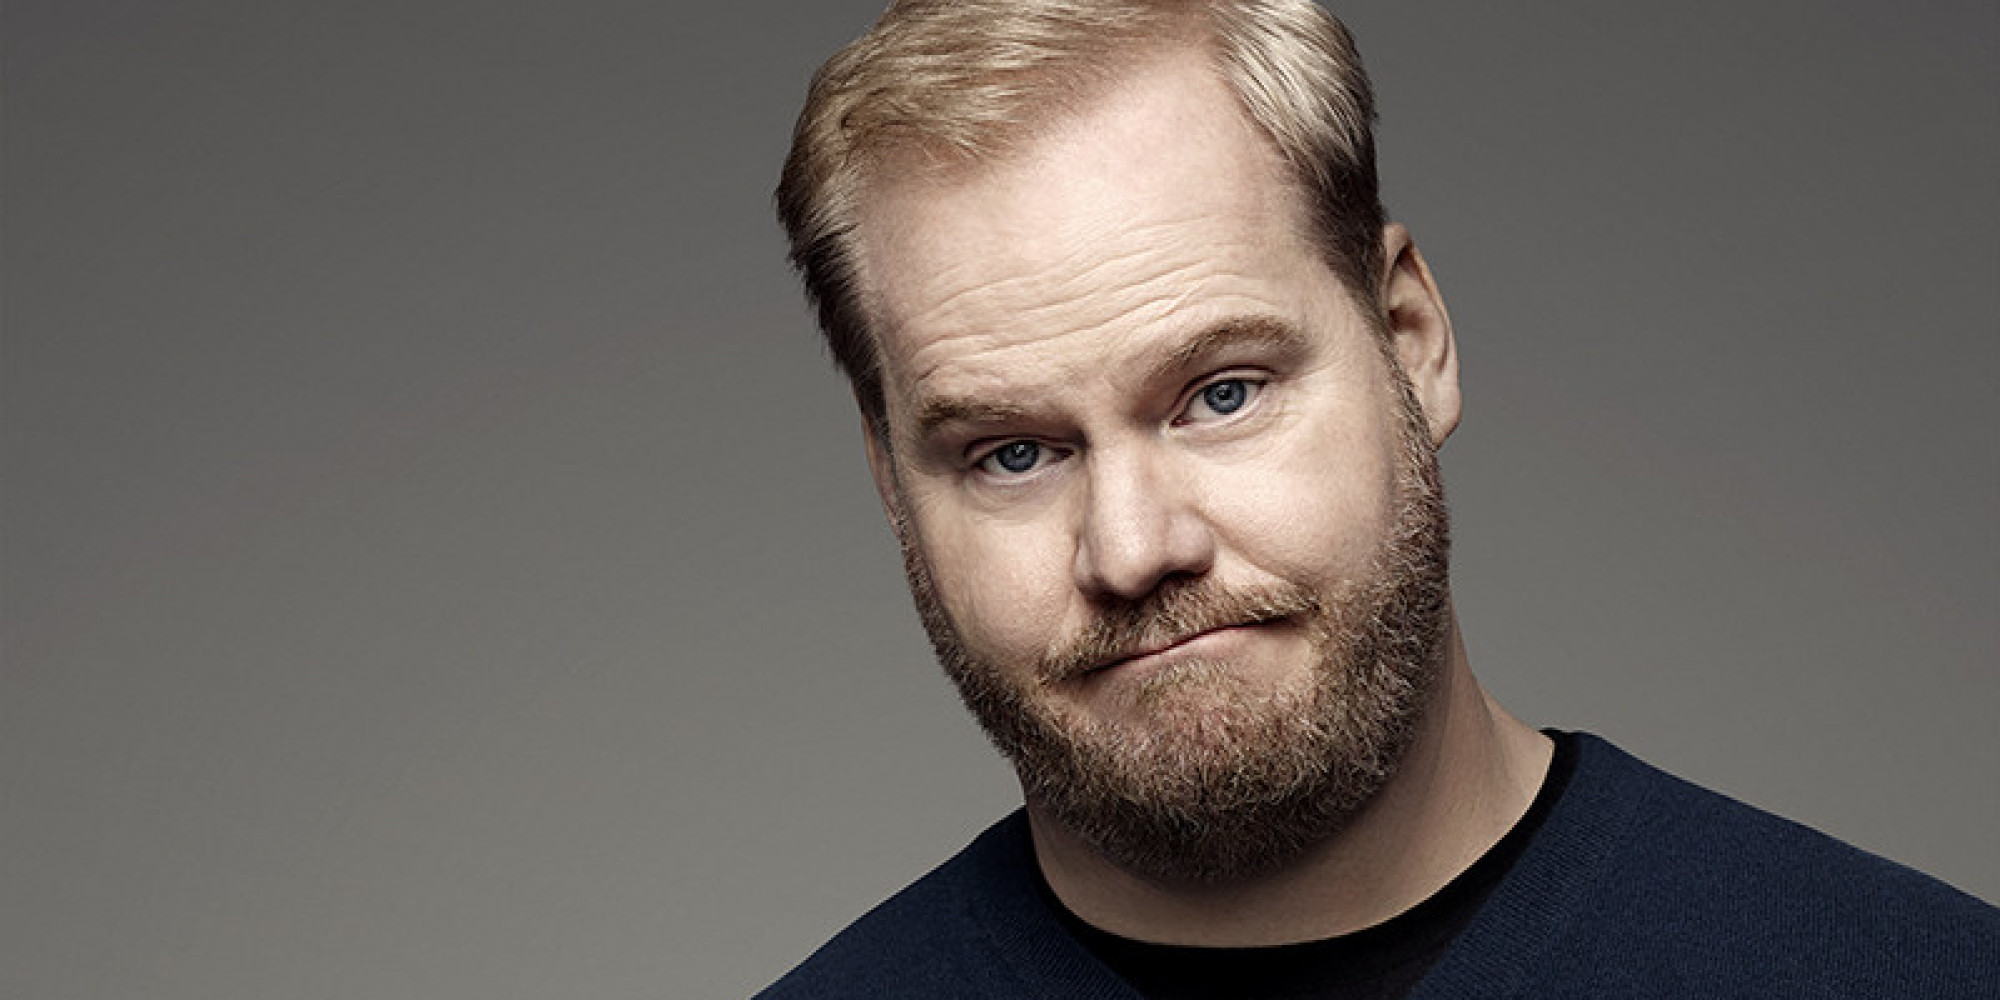 'The Jim Gaffigan Show' Mixes Comic's Humor And Religion